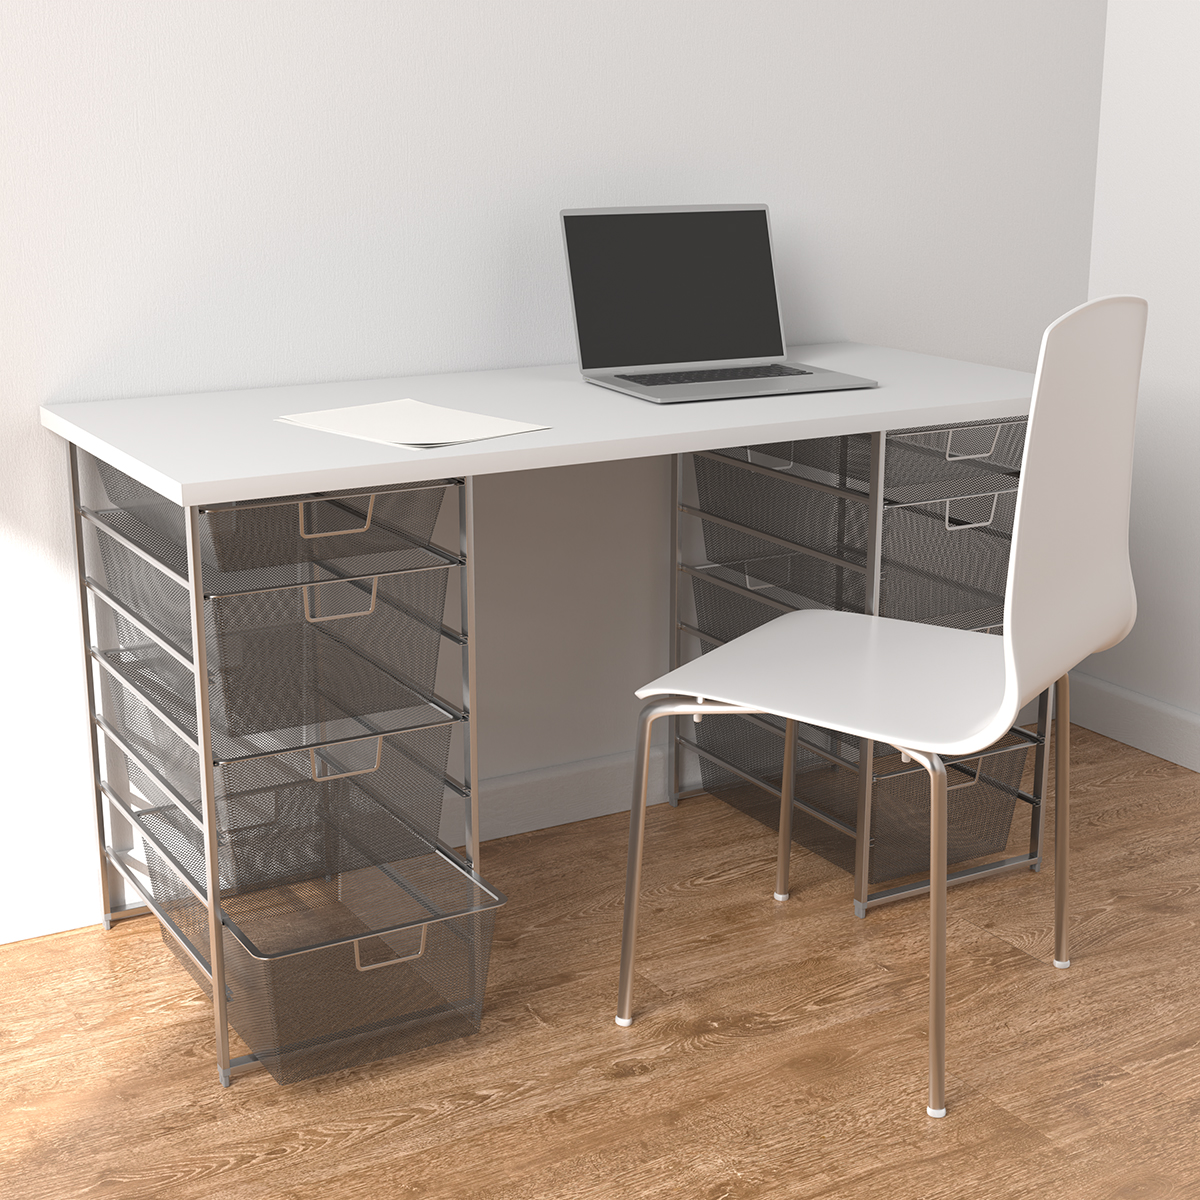 Elfa Platinum & White Desk with Double Drawer